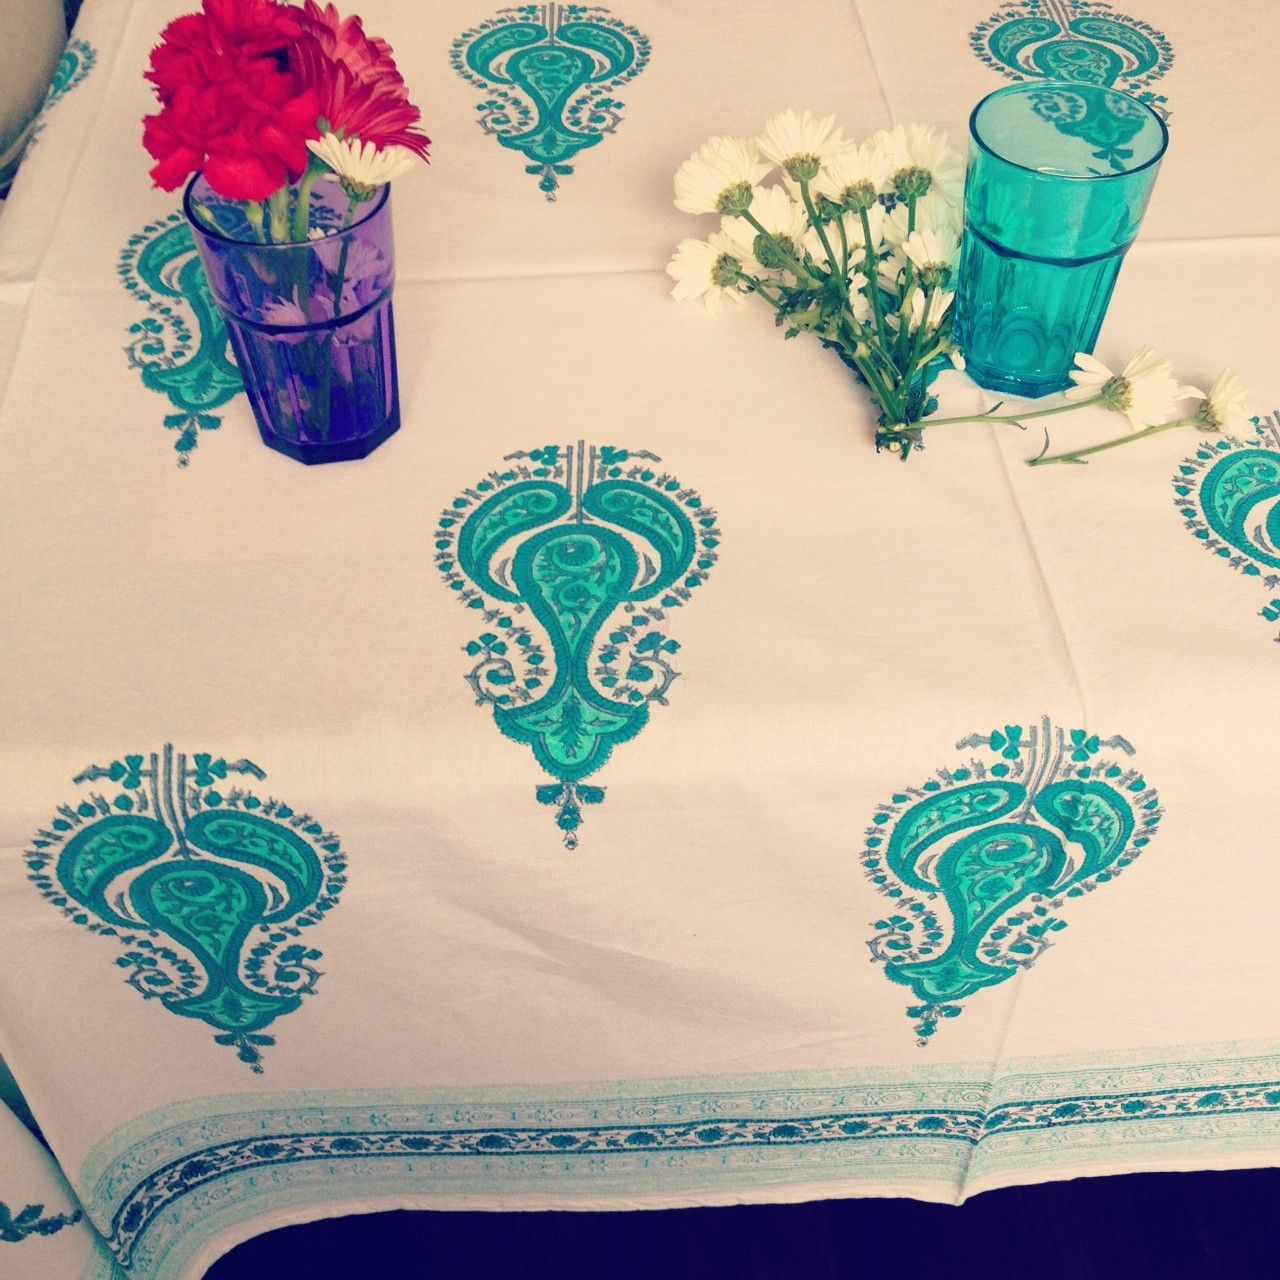 Turquoise Temple Tablecloth Indian Tablecloth Block Printed(180x275cm). For  A Large Dresser